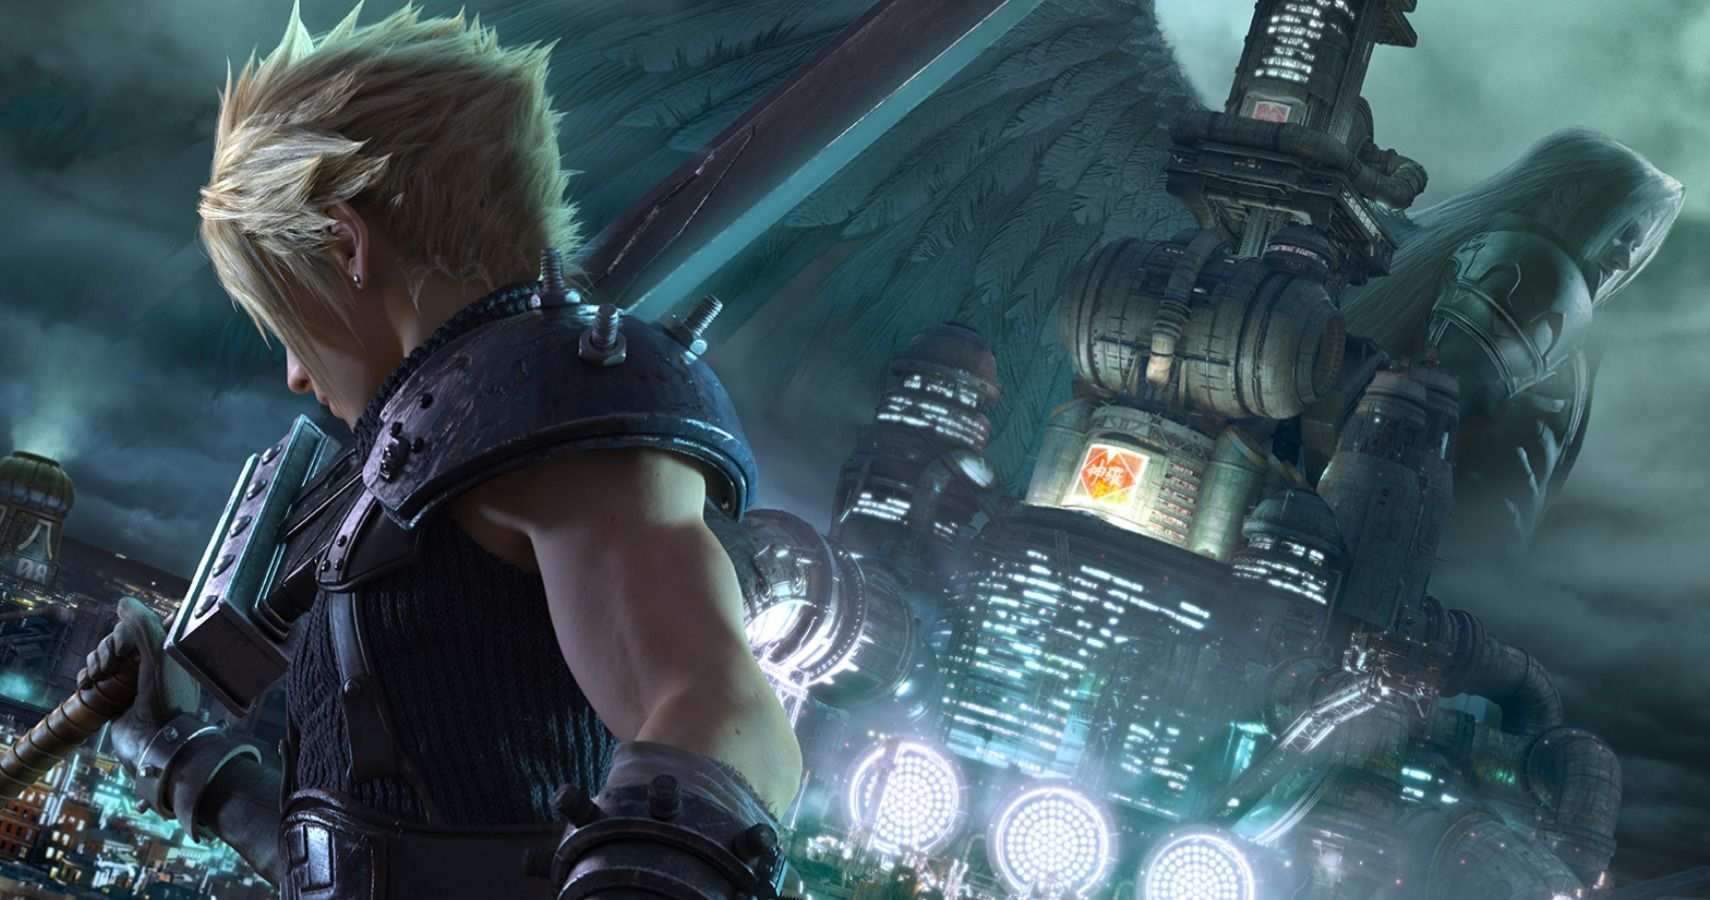 Leak A Final Fantasy 7 Remake Demo Is Coming To Playstation 4